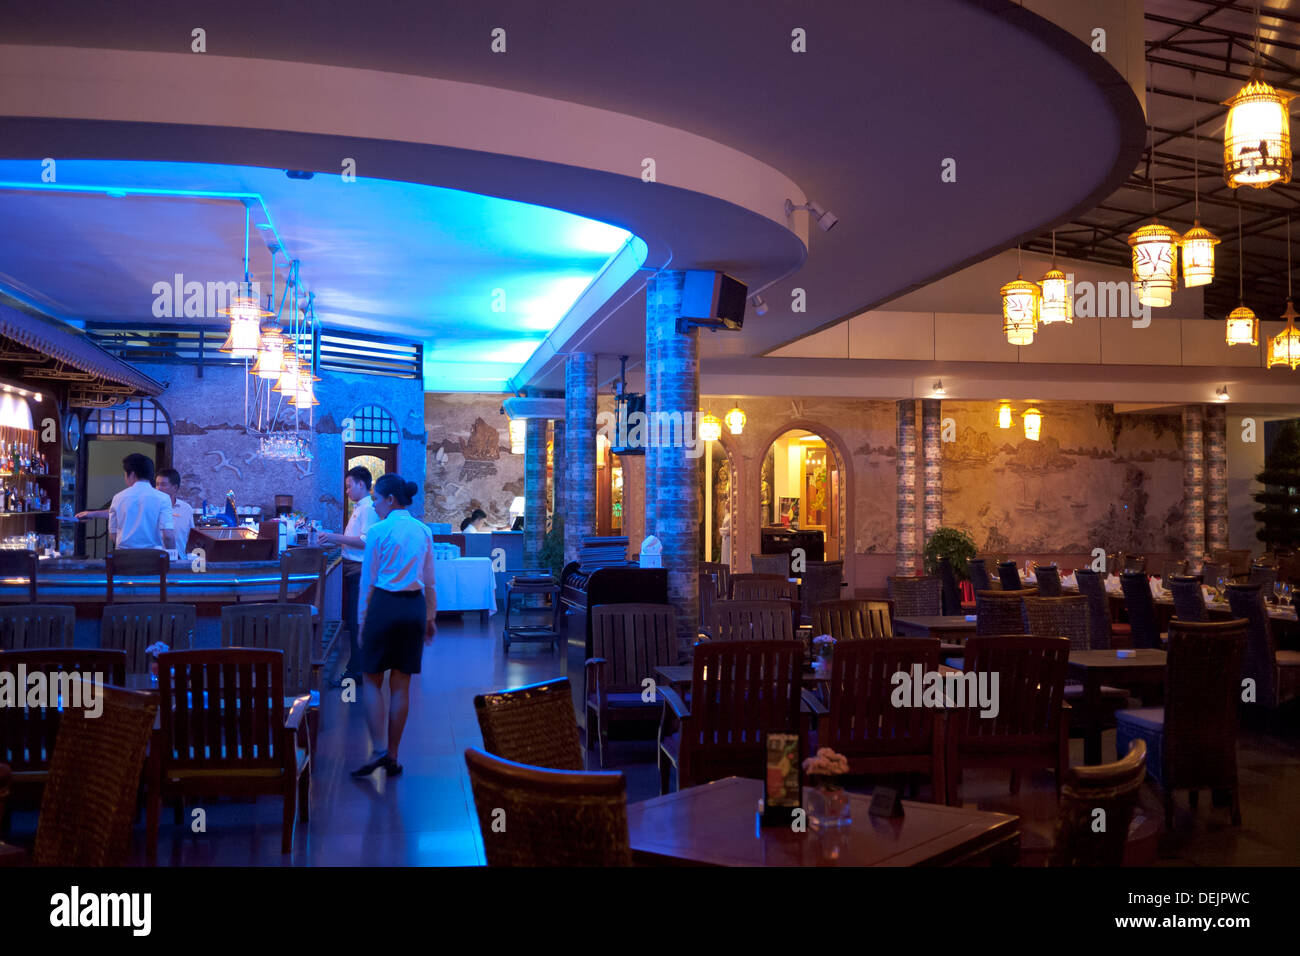 The exquisite rooftop bar of the historic Rex Hotel in Ho Chi Minh City (Saigon), Vietnam. - Stock Image